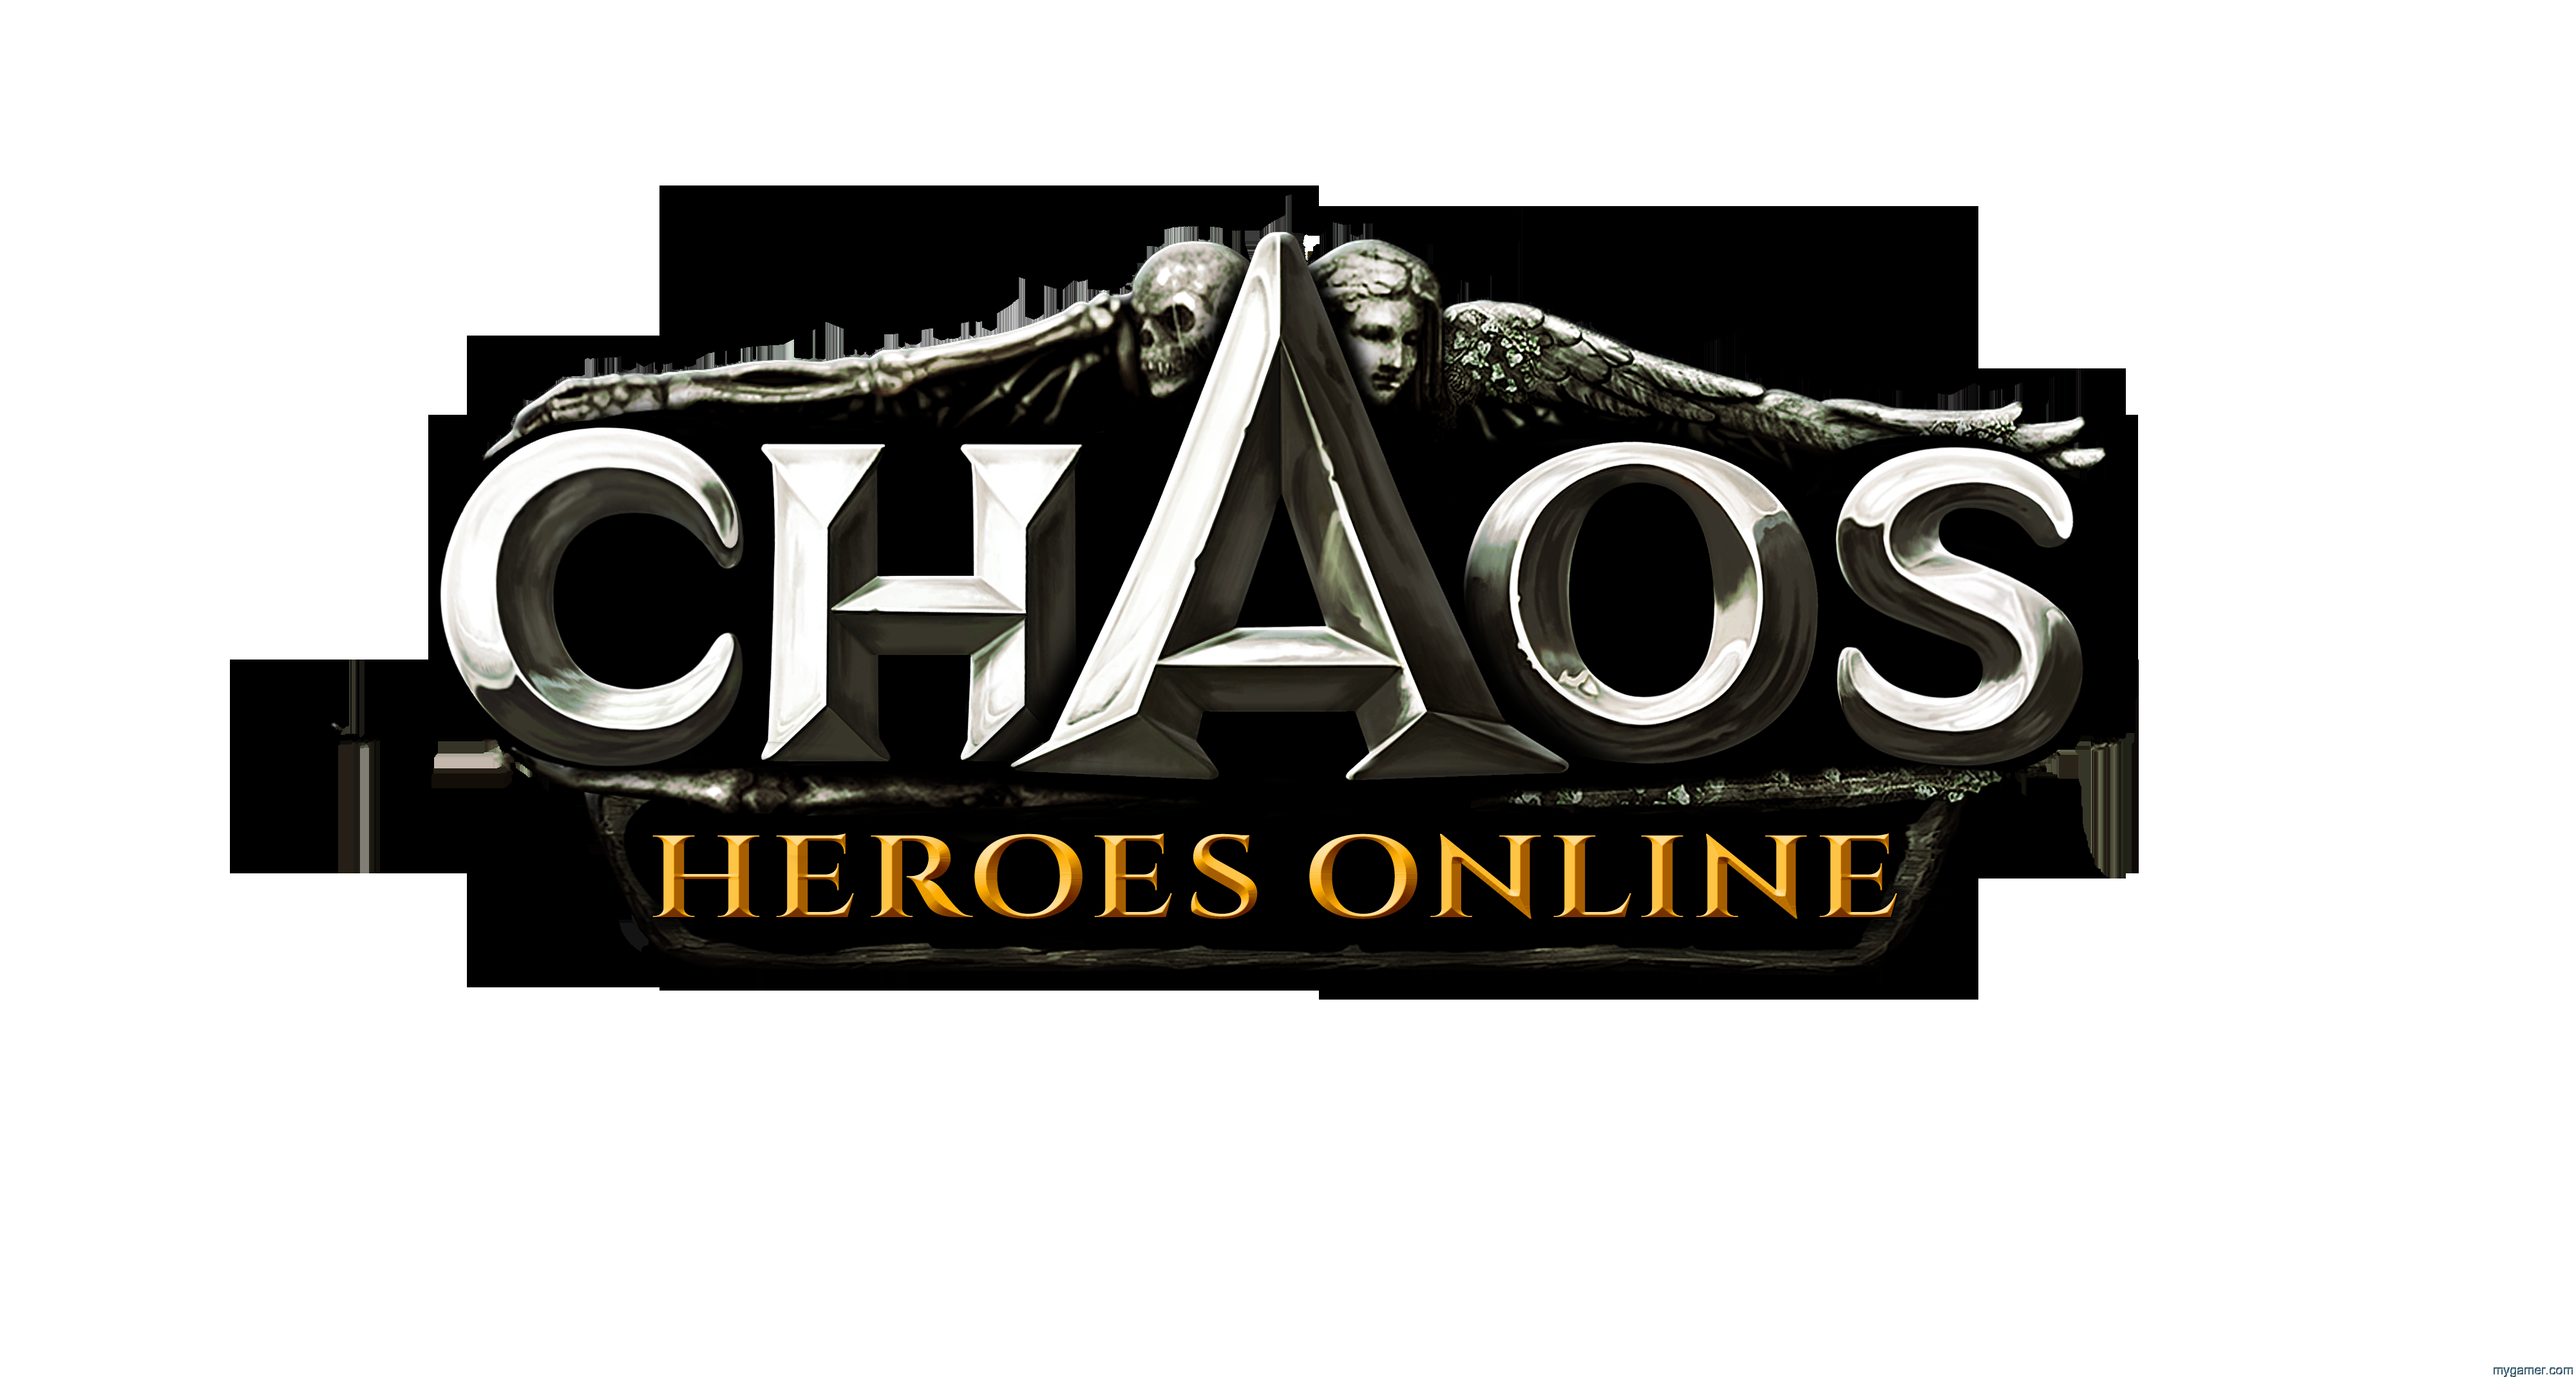 Chaos Heros Online - Logo AERIA GAMES ANNOUNCES ACTION-PACKED,  FREE-TO-PLAY MOBA AERIA GAMES ANNOUNCES ACTION-PACKED,  FREE-TO-PLAY MOBA Chaos Heros Online Logo